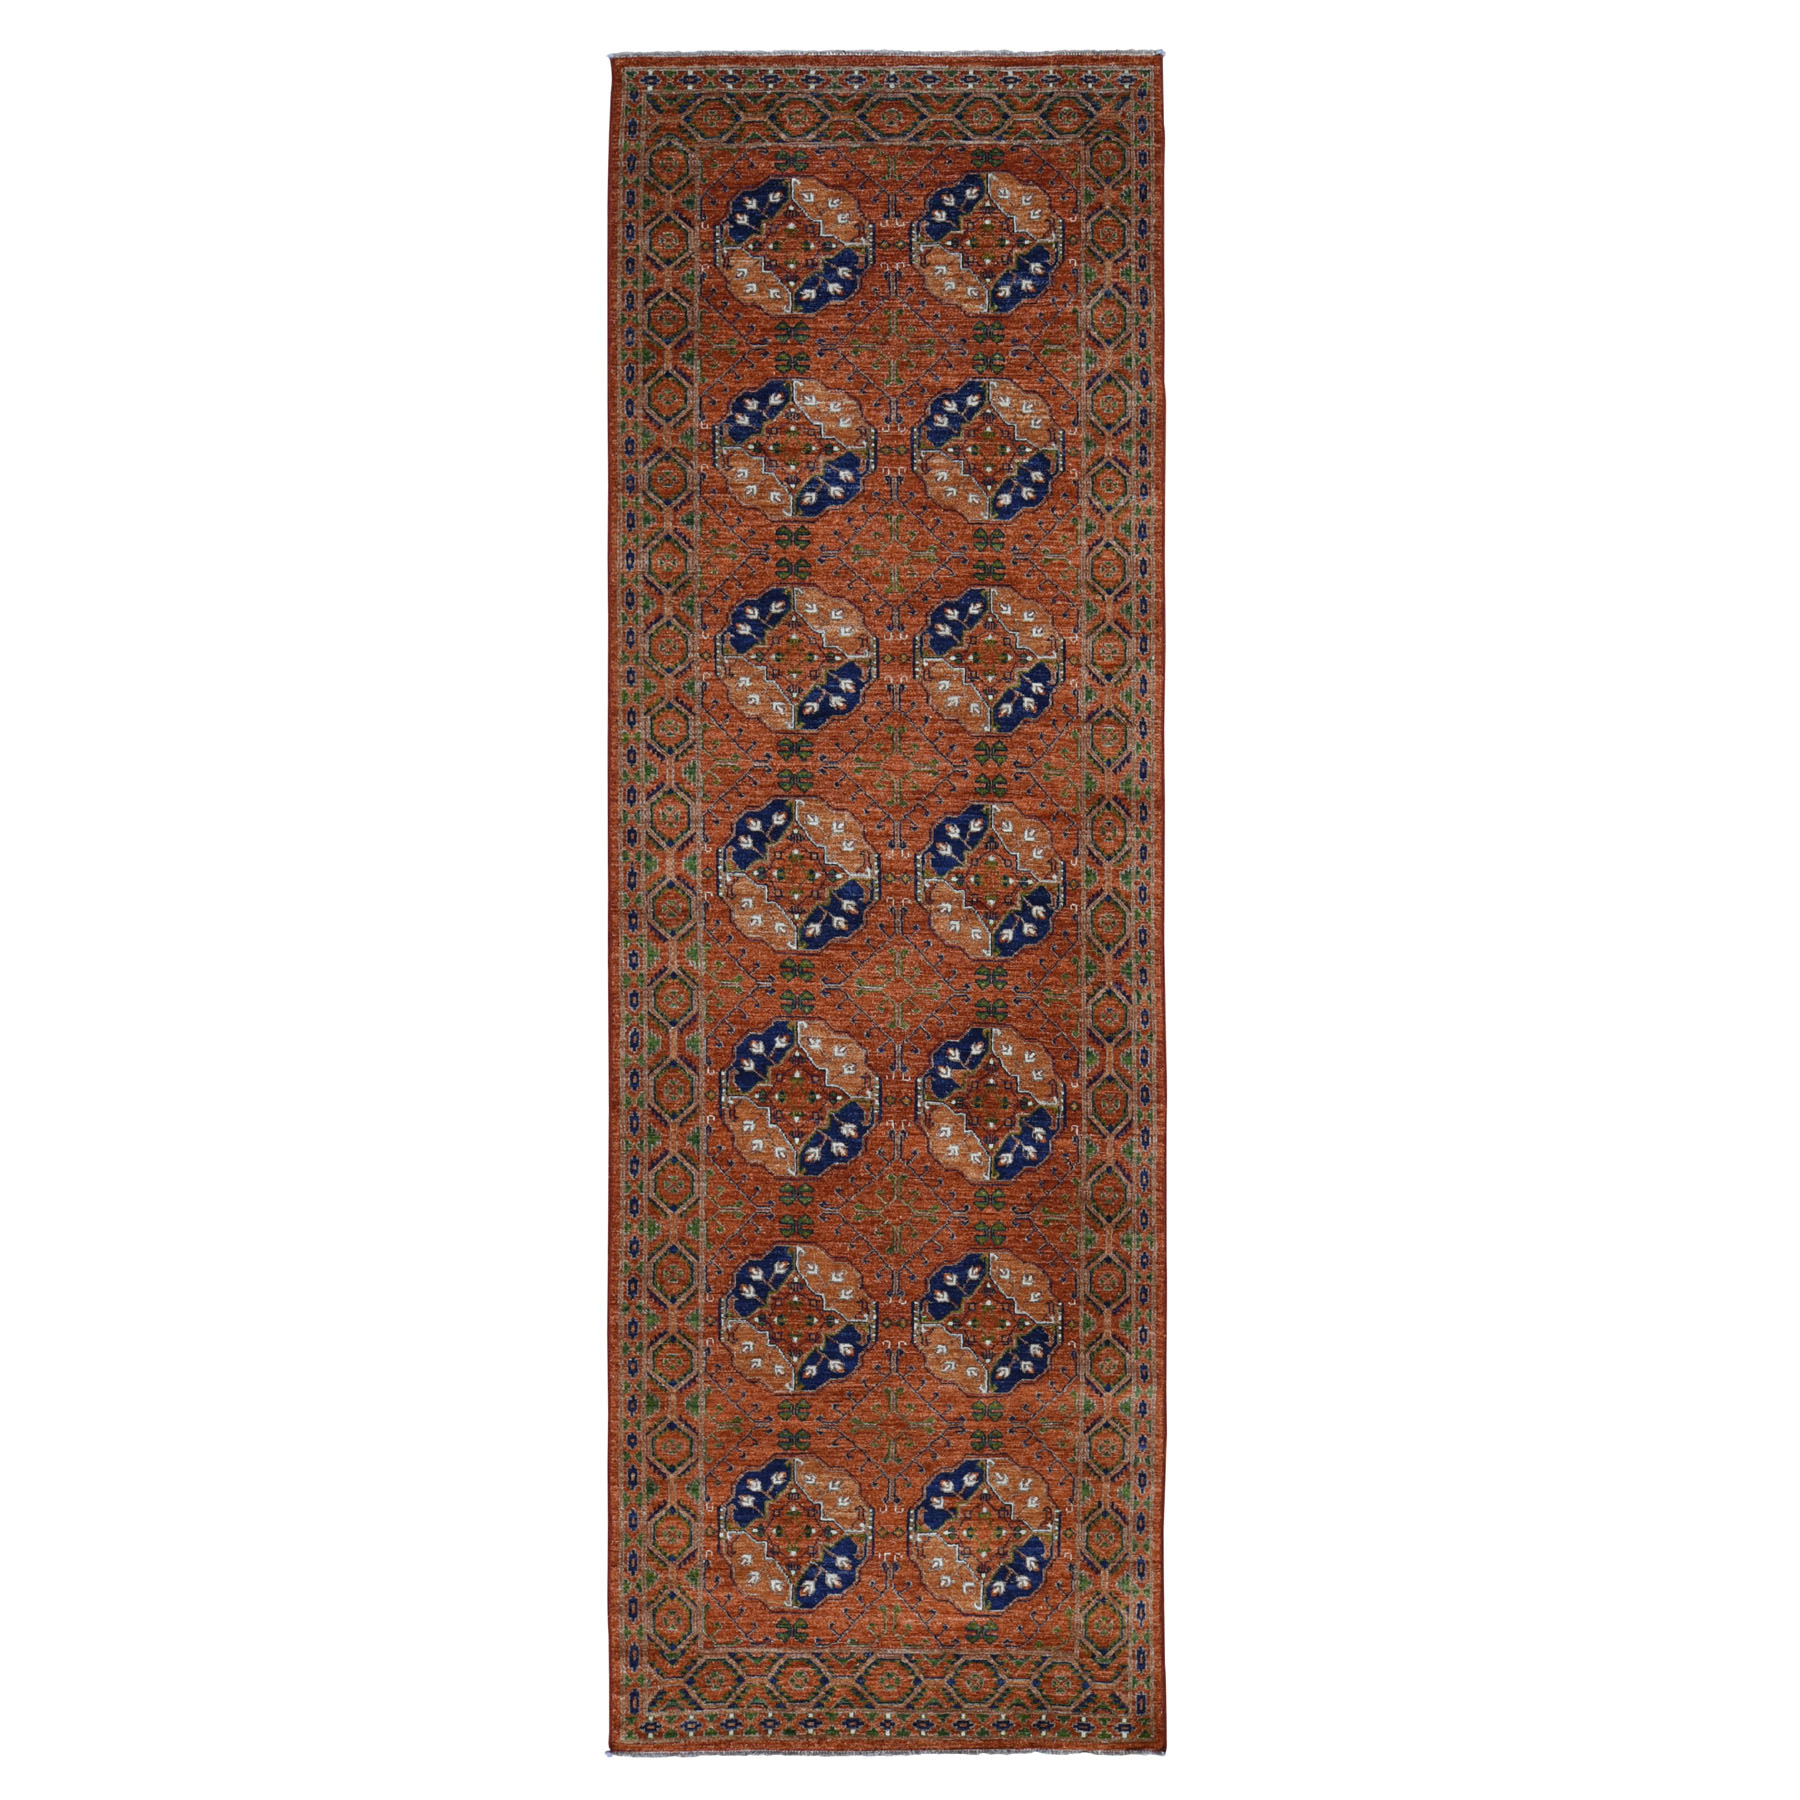 Nomadic And Village Collection Hand Knotted Orange Rug No: 199638